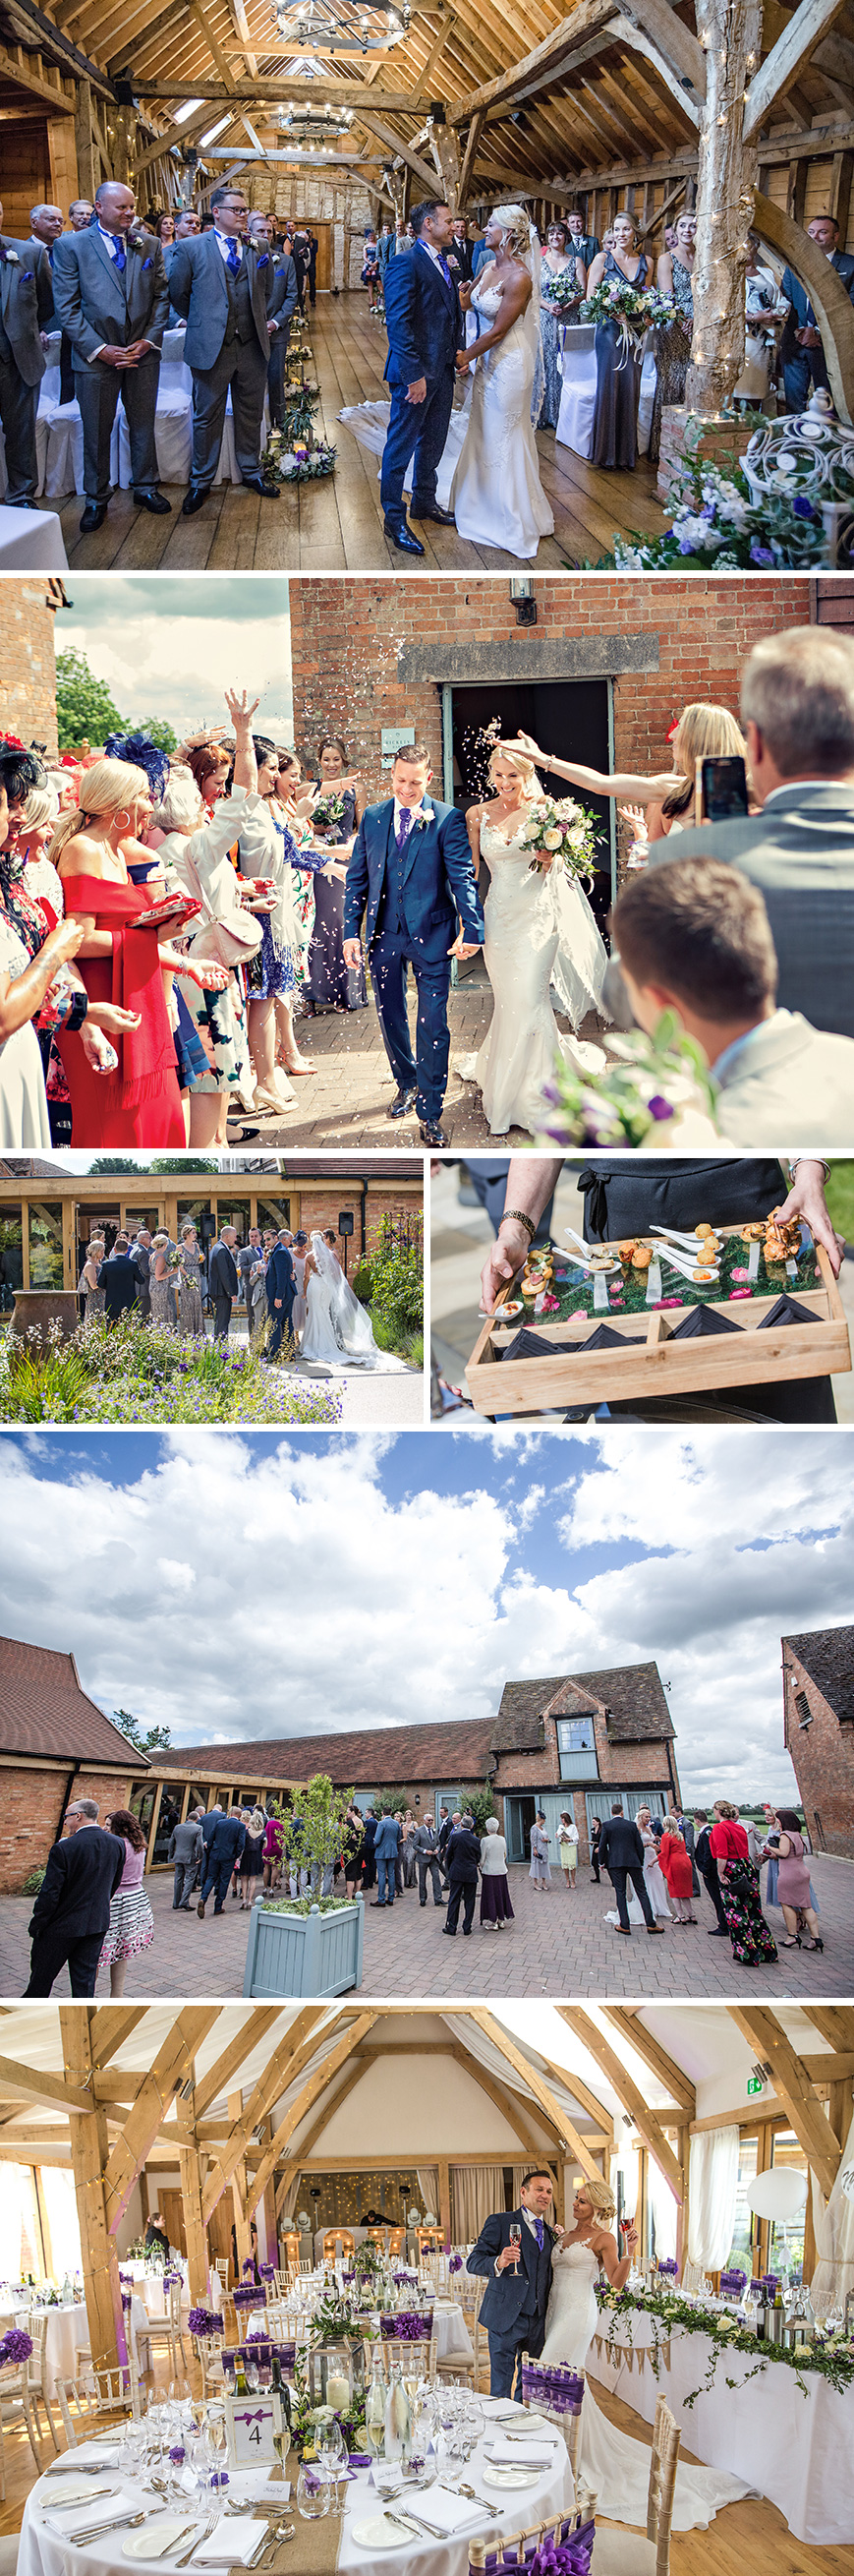 Real Wedding - Karen and Martin's Shabby-Chic Wedding At Bassmead Manor Barns | CHWV